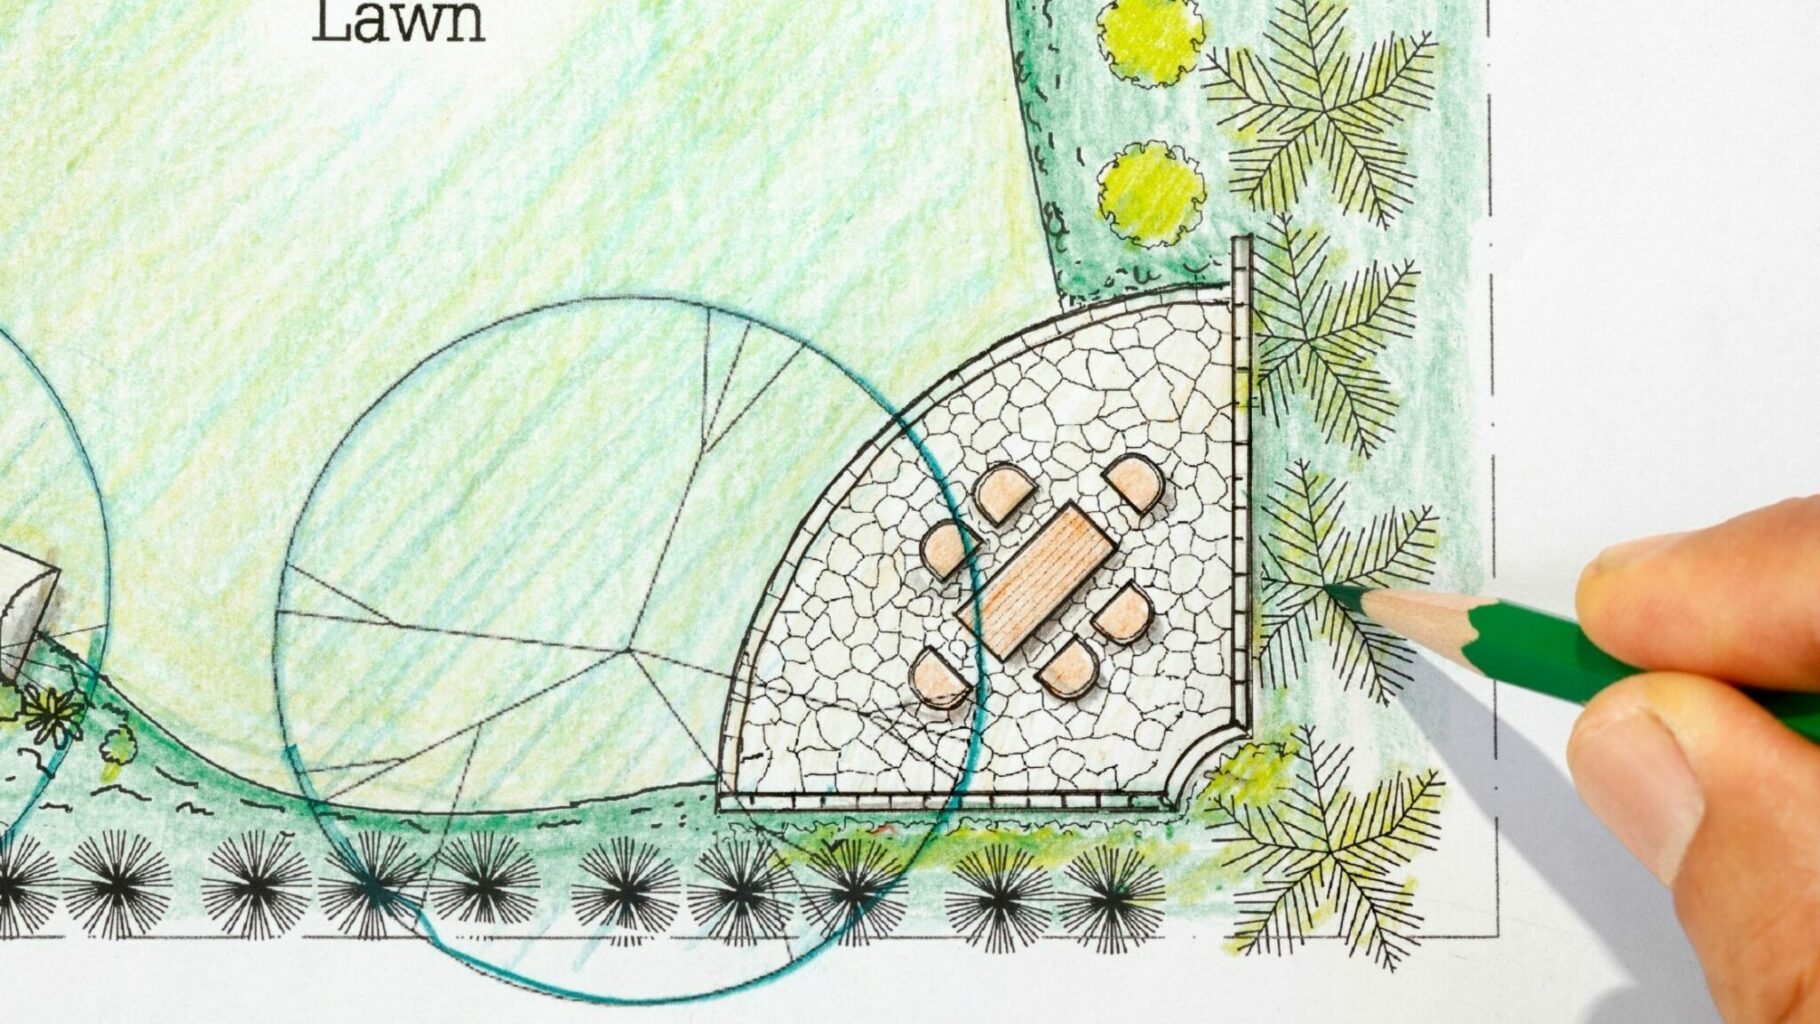 Diagram planning where to place a tree